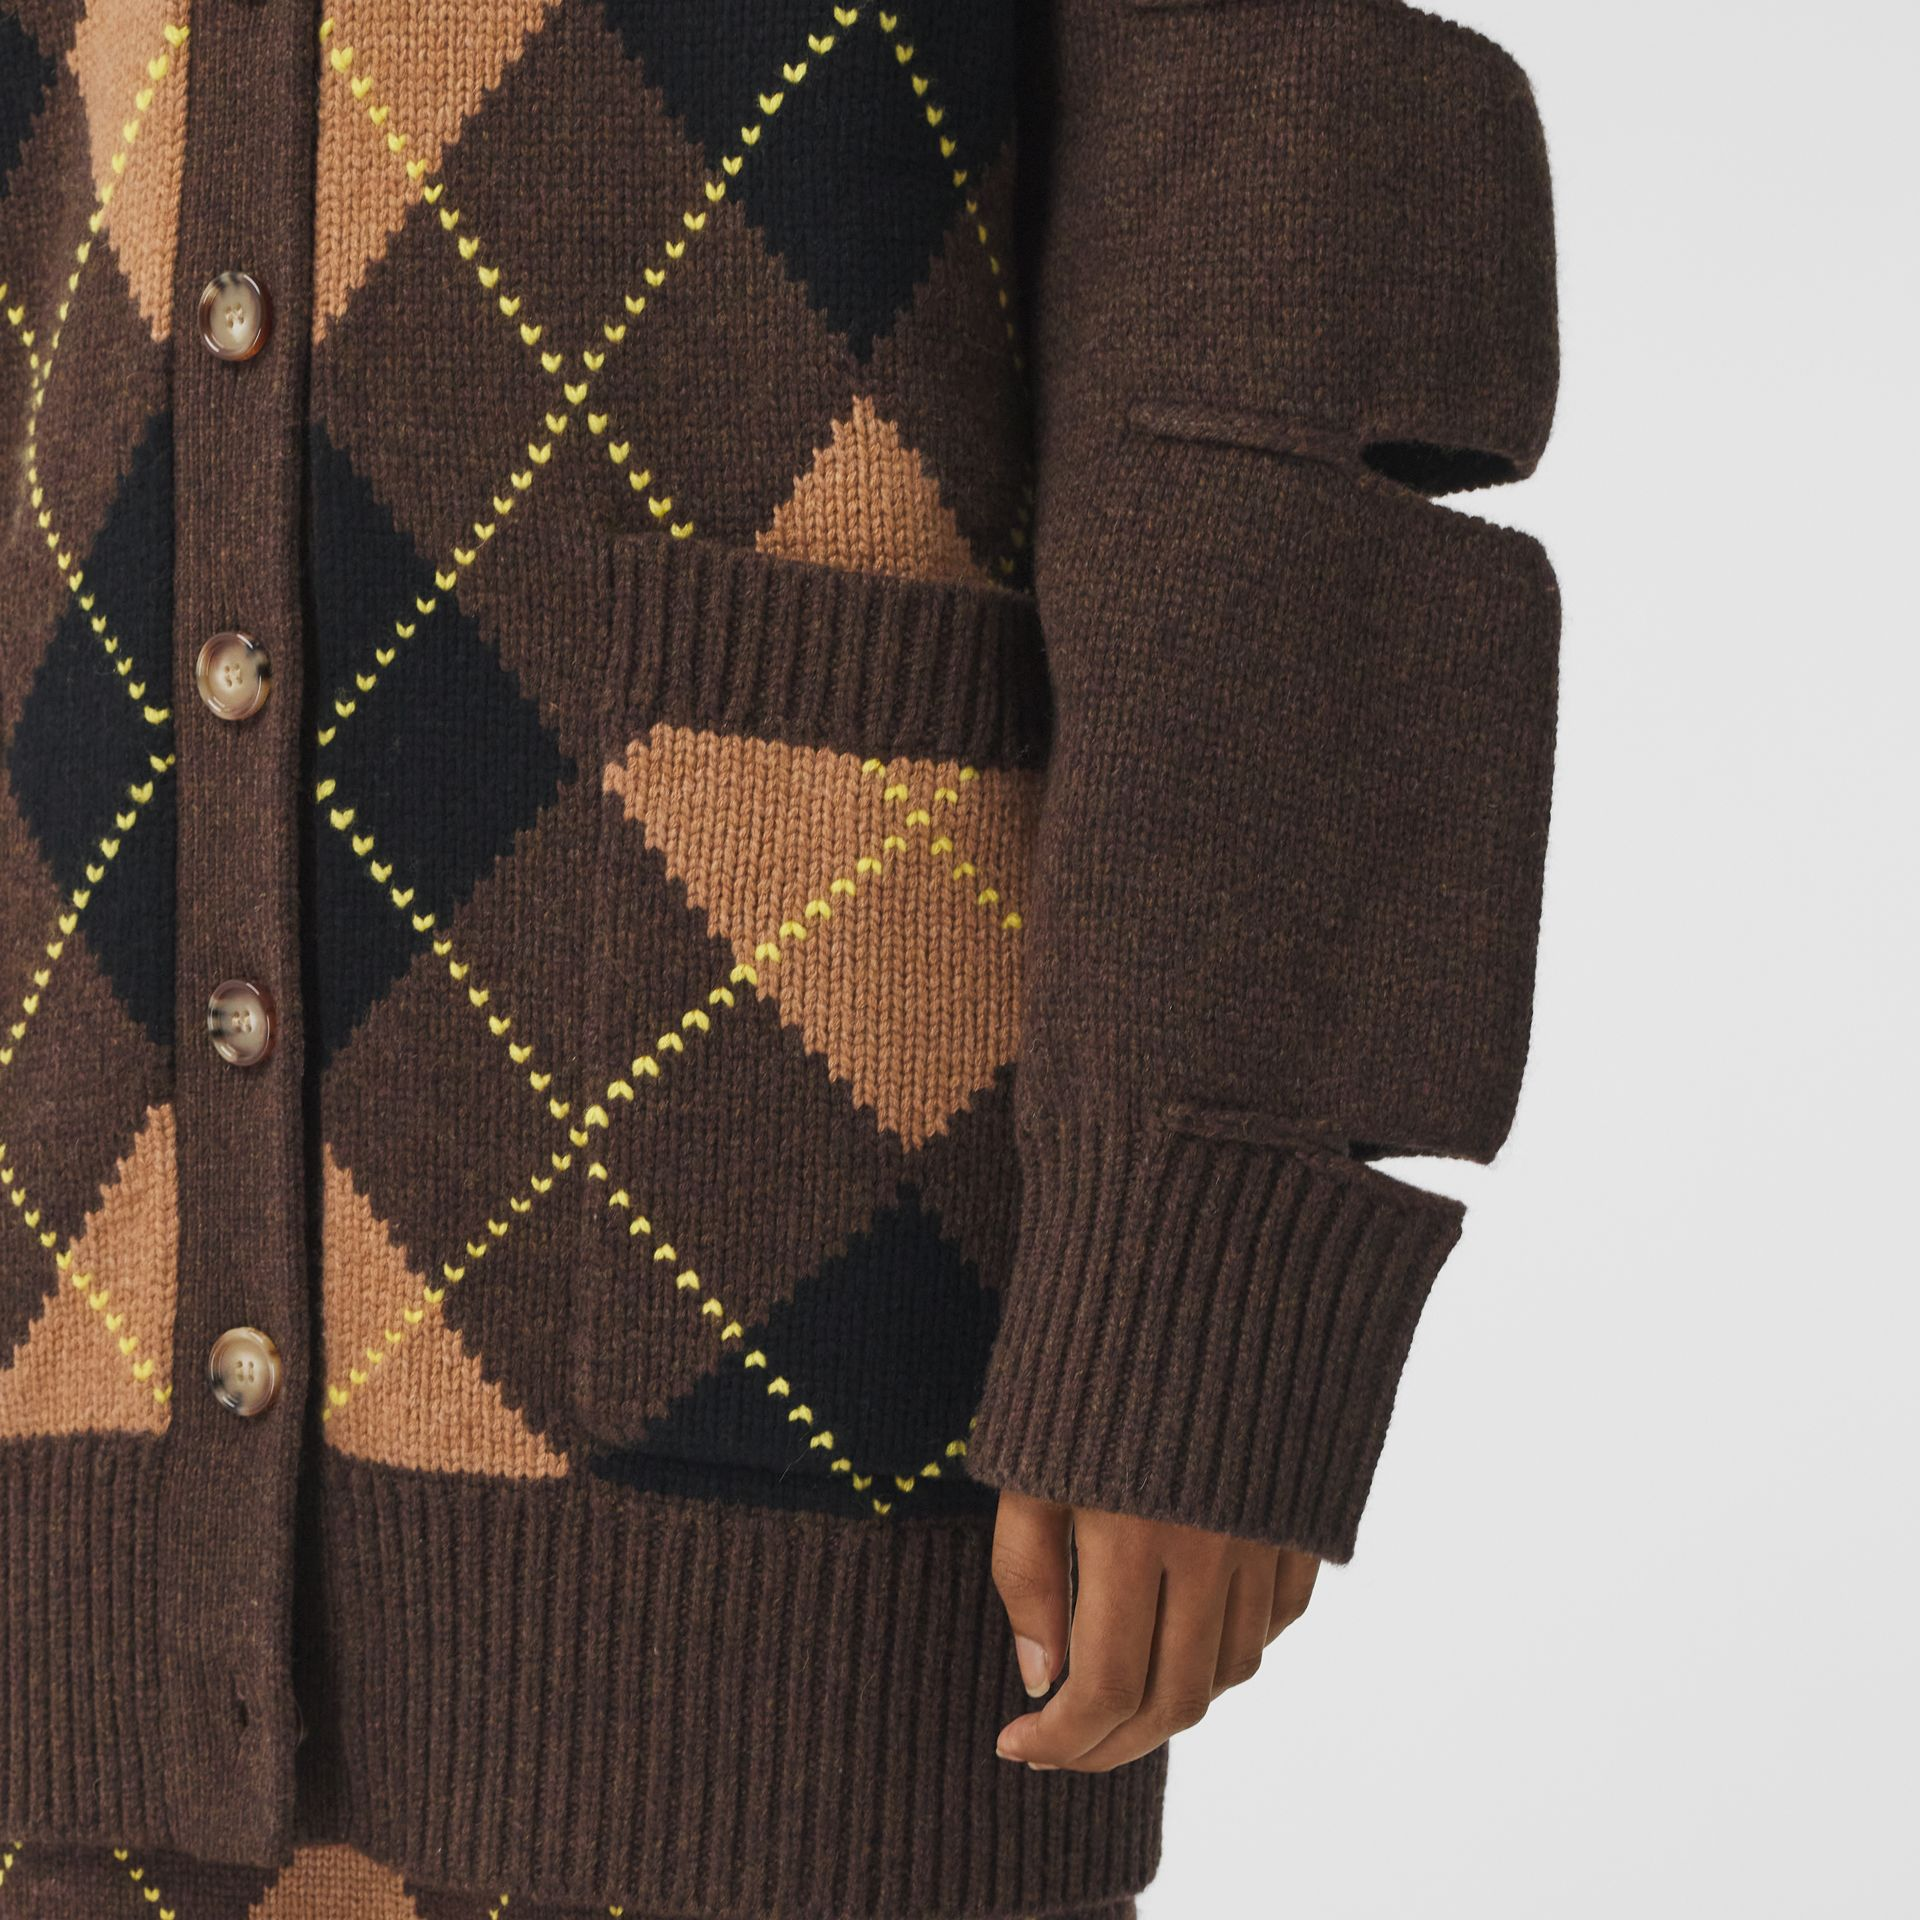 Cut-out Detail Argyle Intarsia Wool Cashmere Cardigan in Dark Khaki - Women | Burberry - gallery image 4